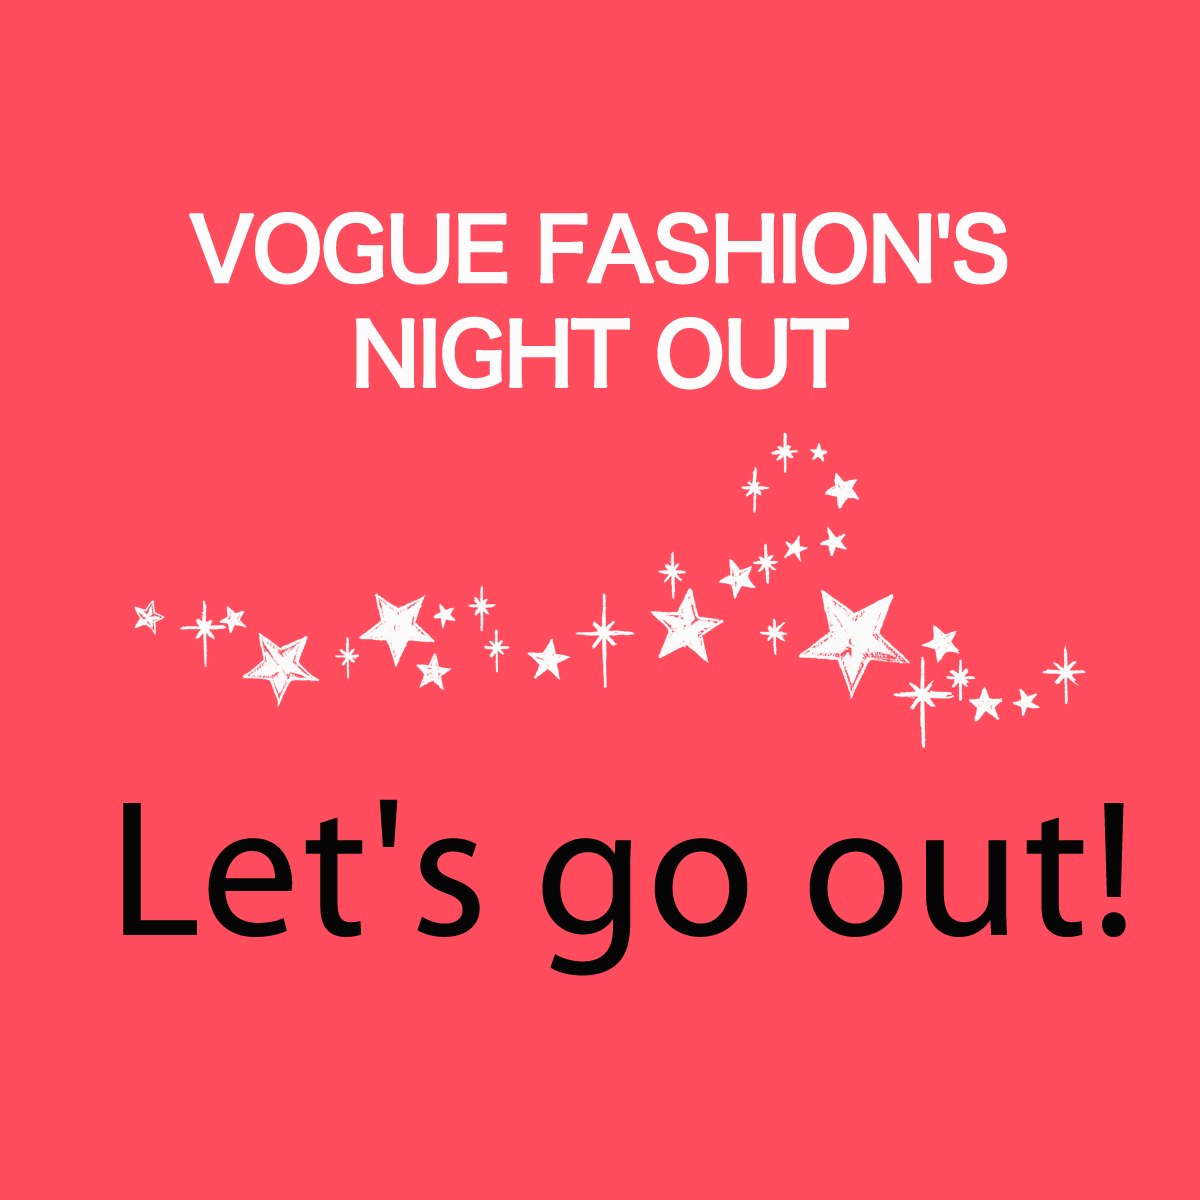 「VOGUE FASHION'S NIGHT OUT」から学ぶ→Let's go out.